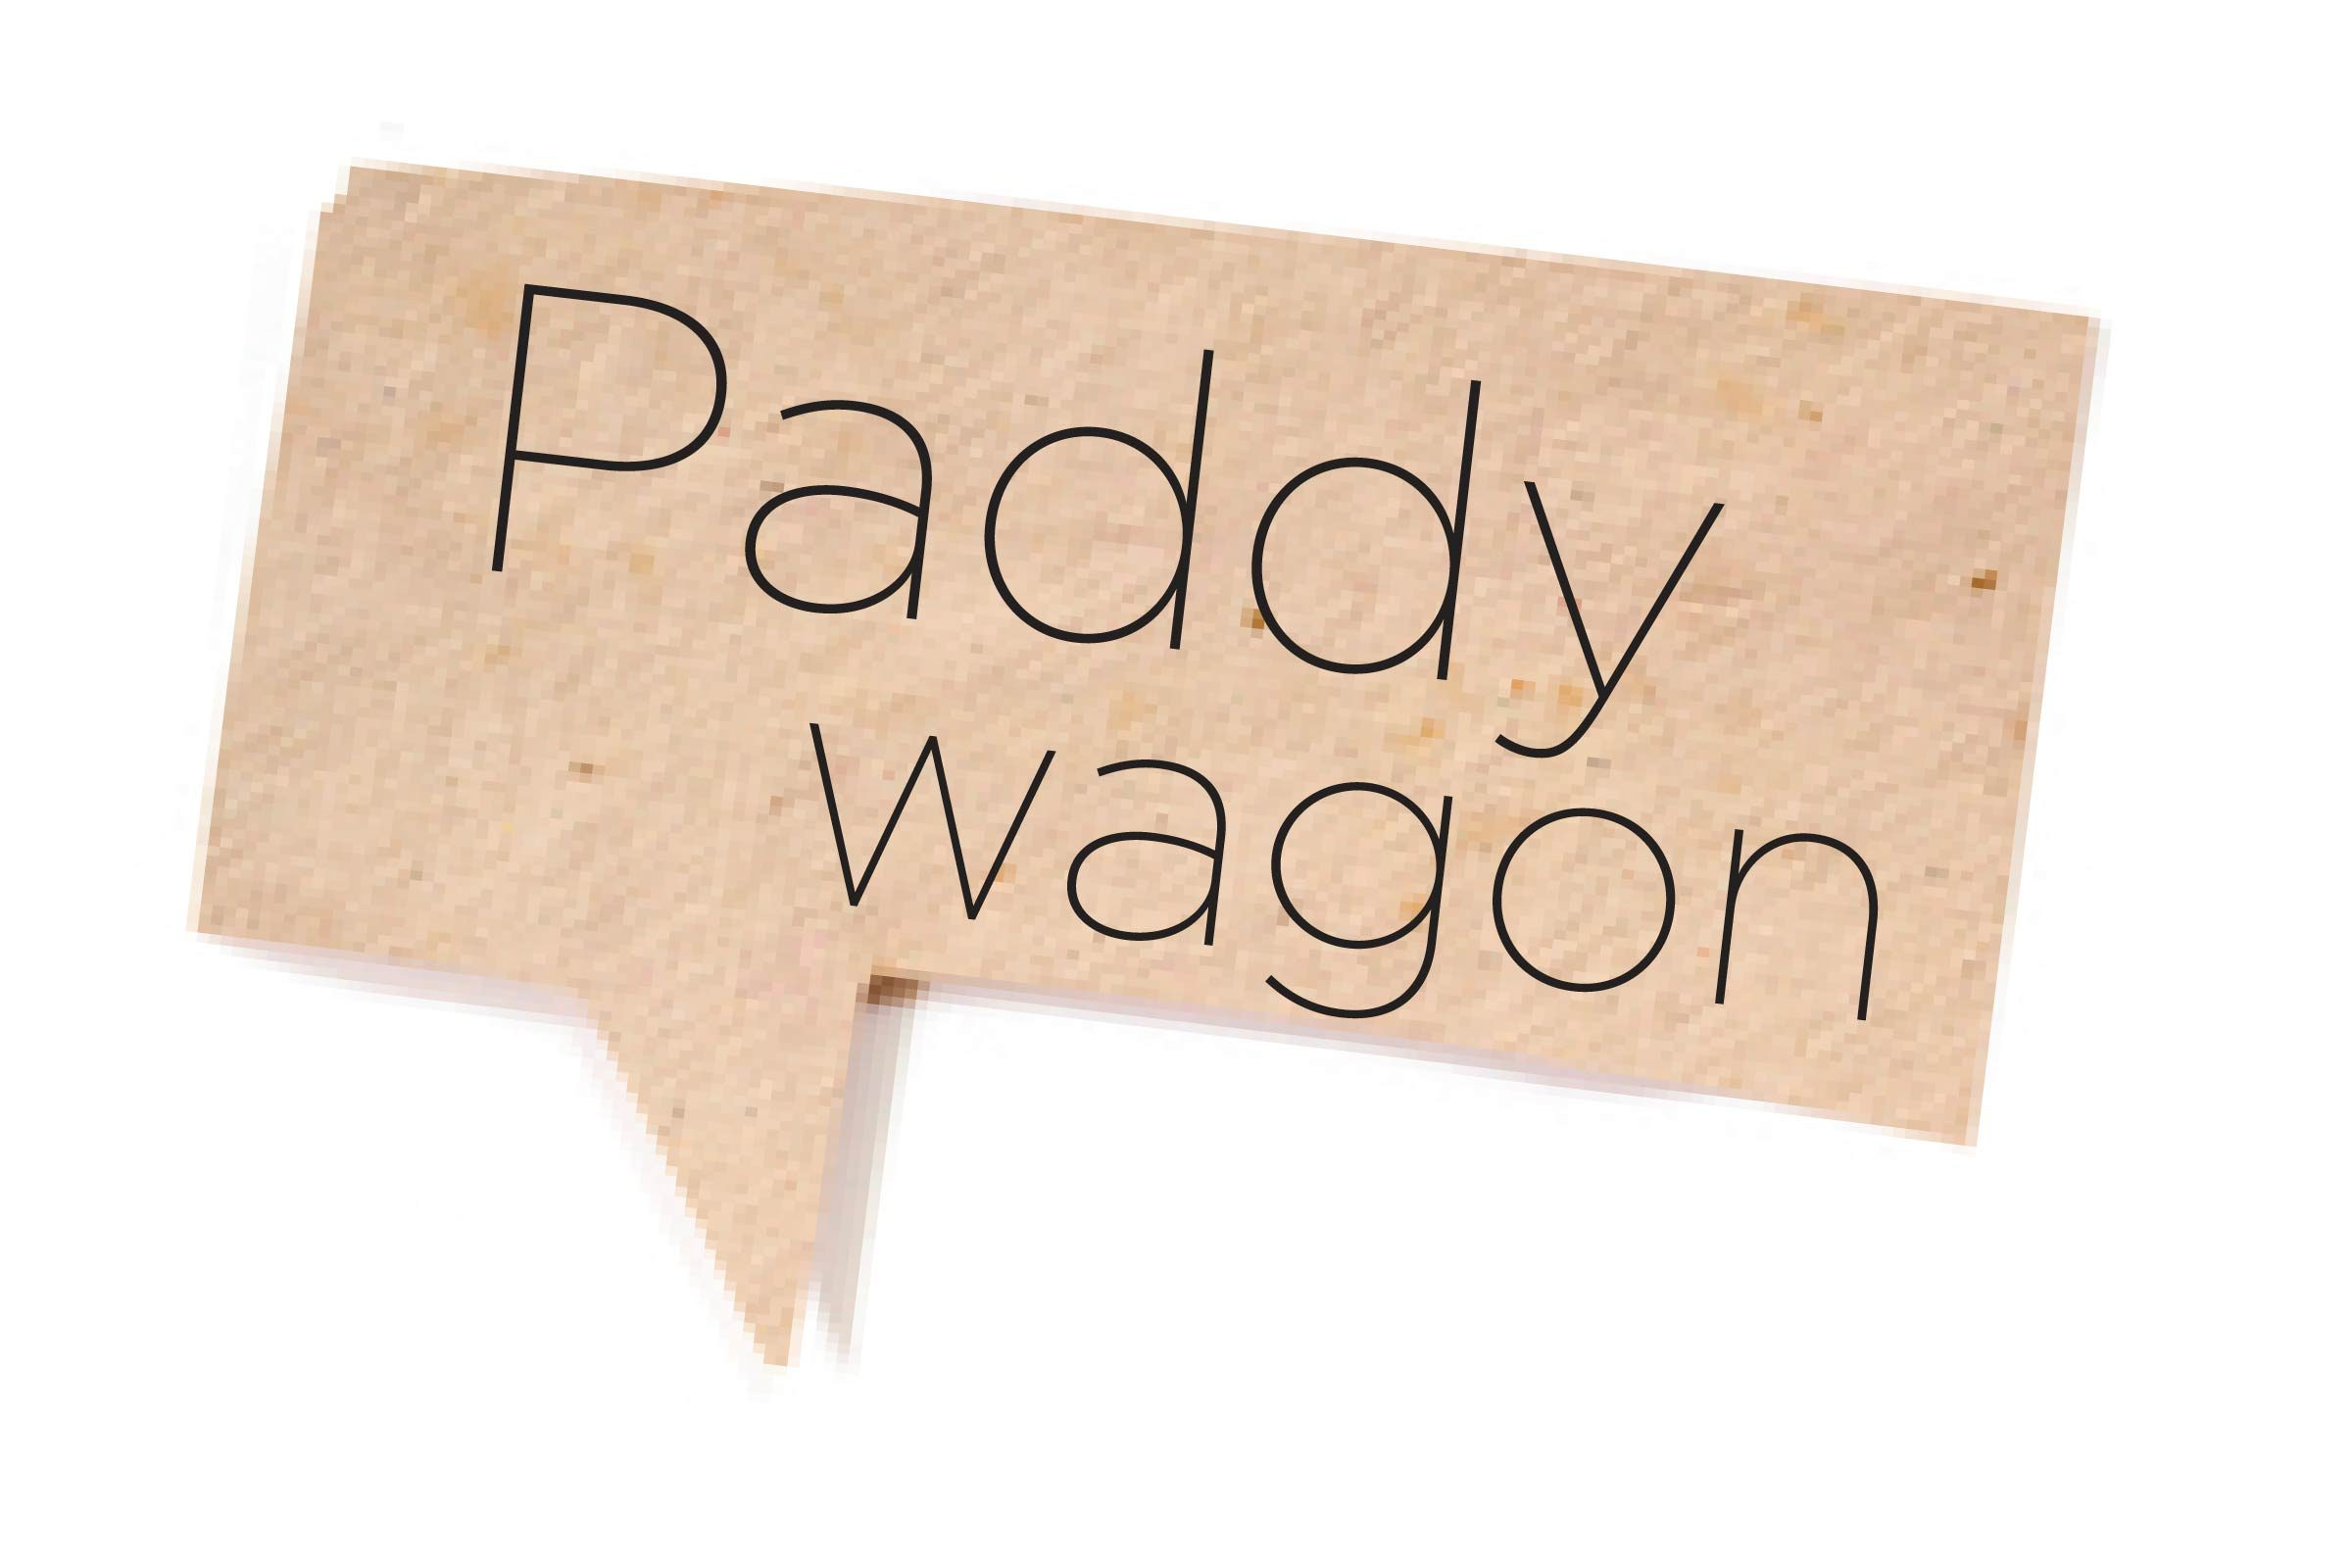 Offensive words - Paddy wagon